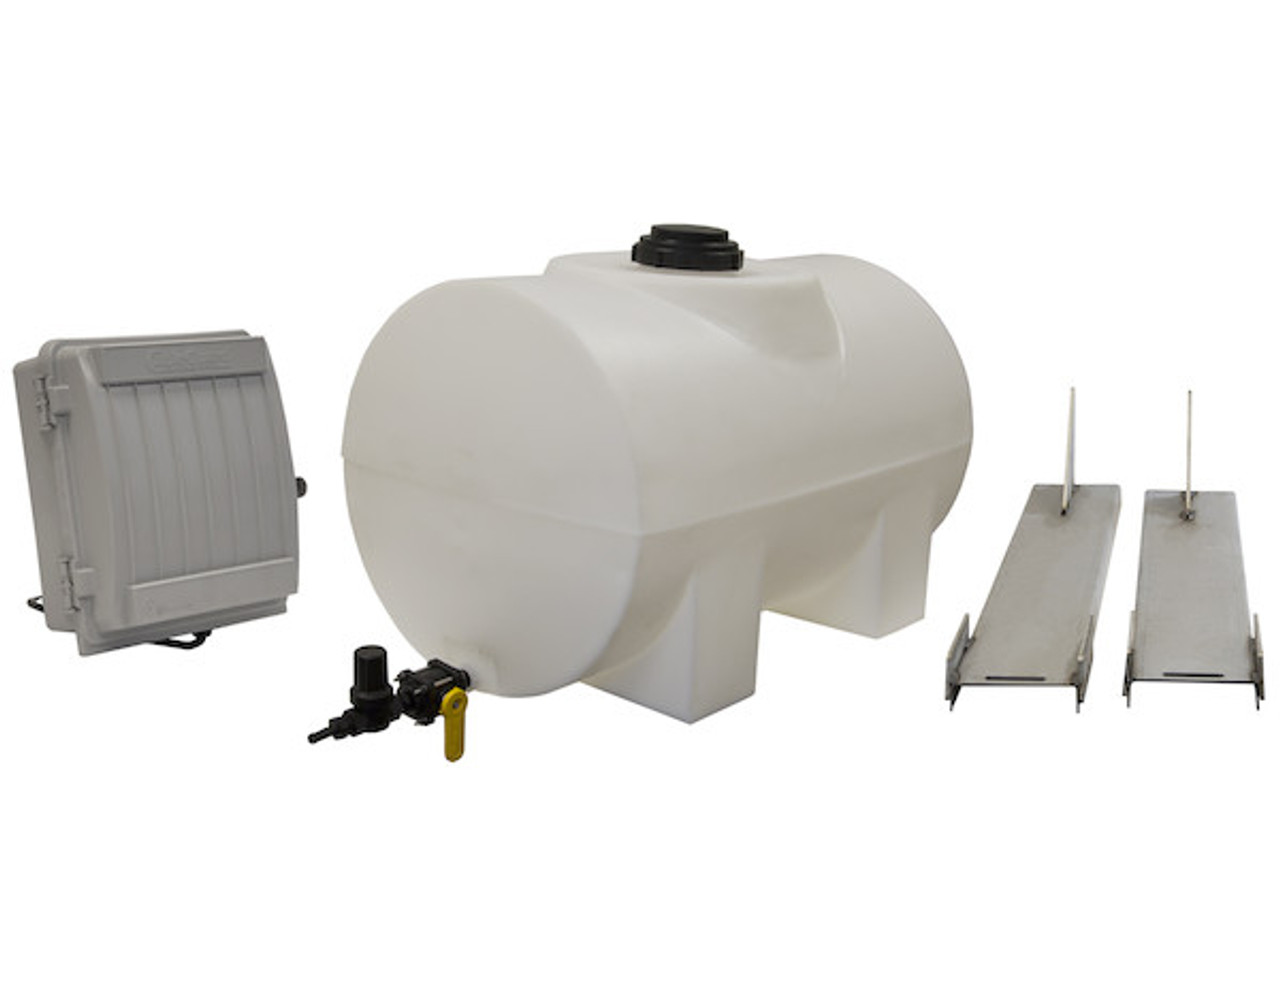 LS3 Buyers SaltDogg 12 VDC Pre-Wet Kit With Two 55-Gallon Poly V-Box Mount Reservoirs Picture #1